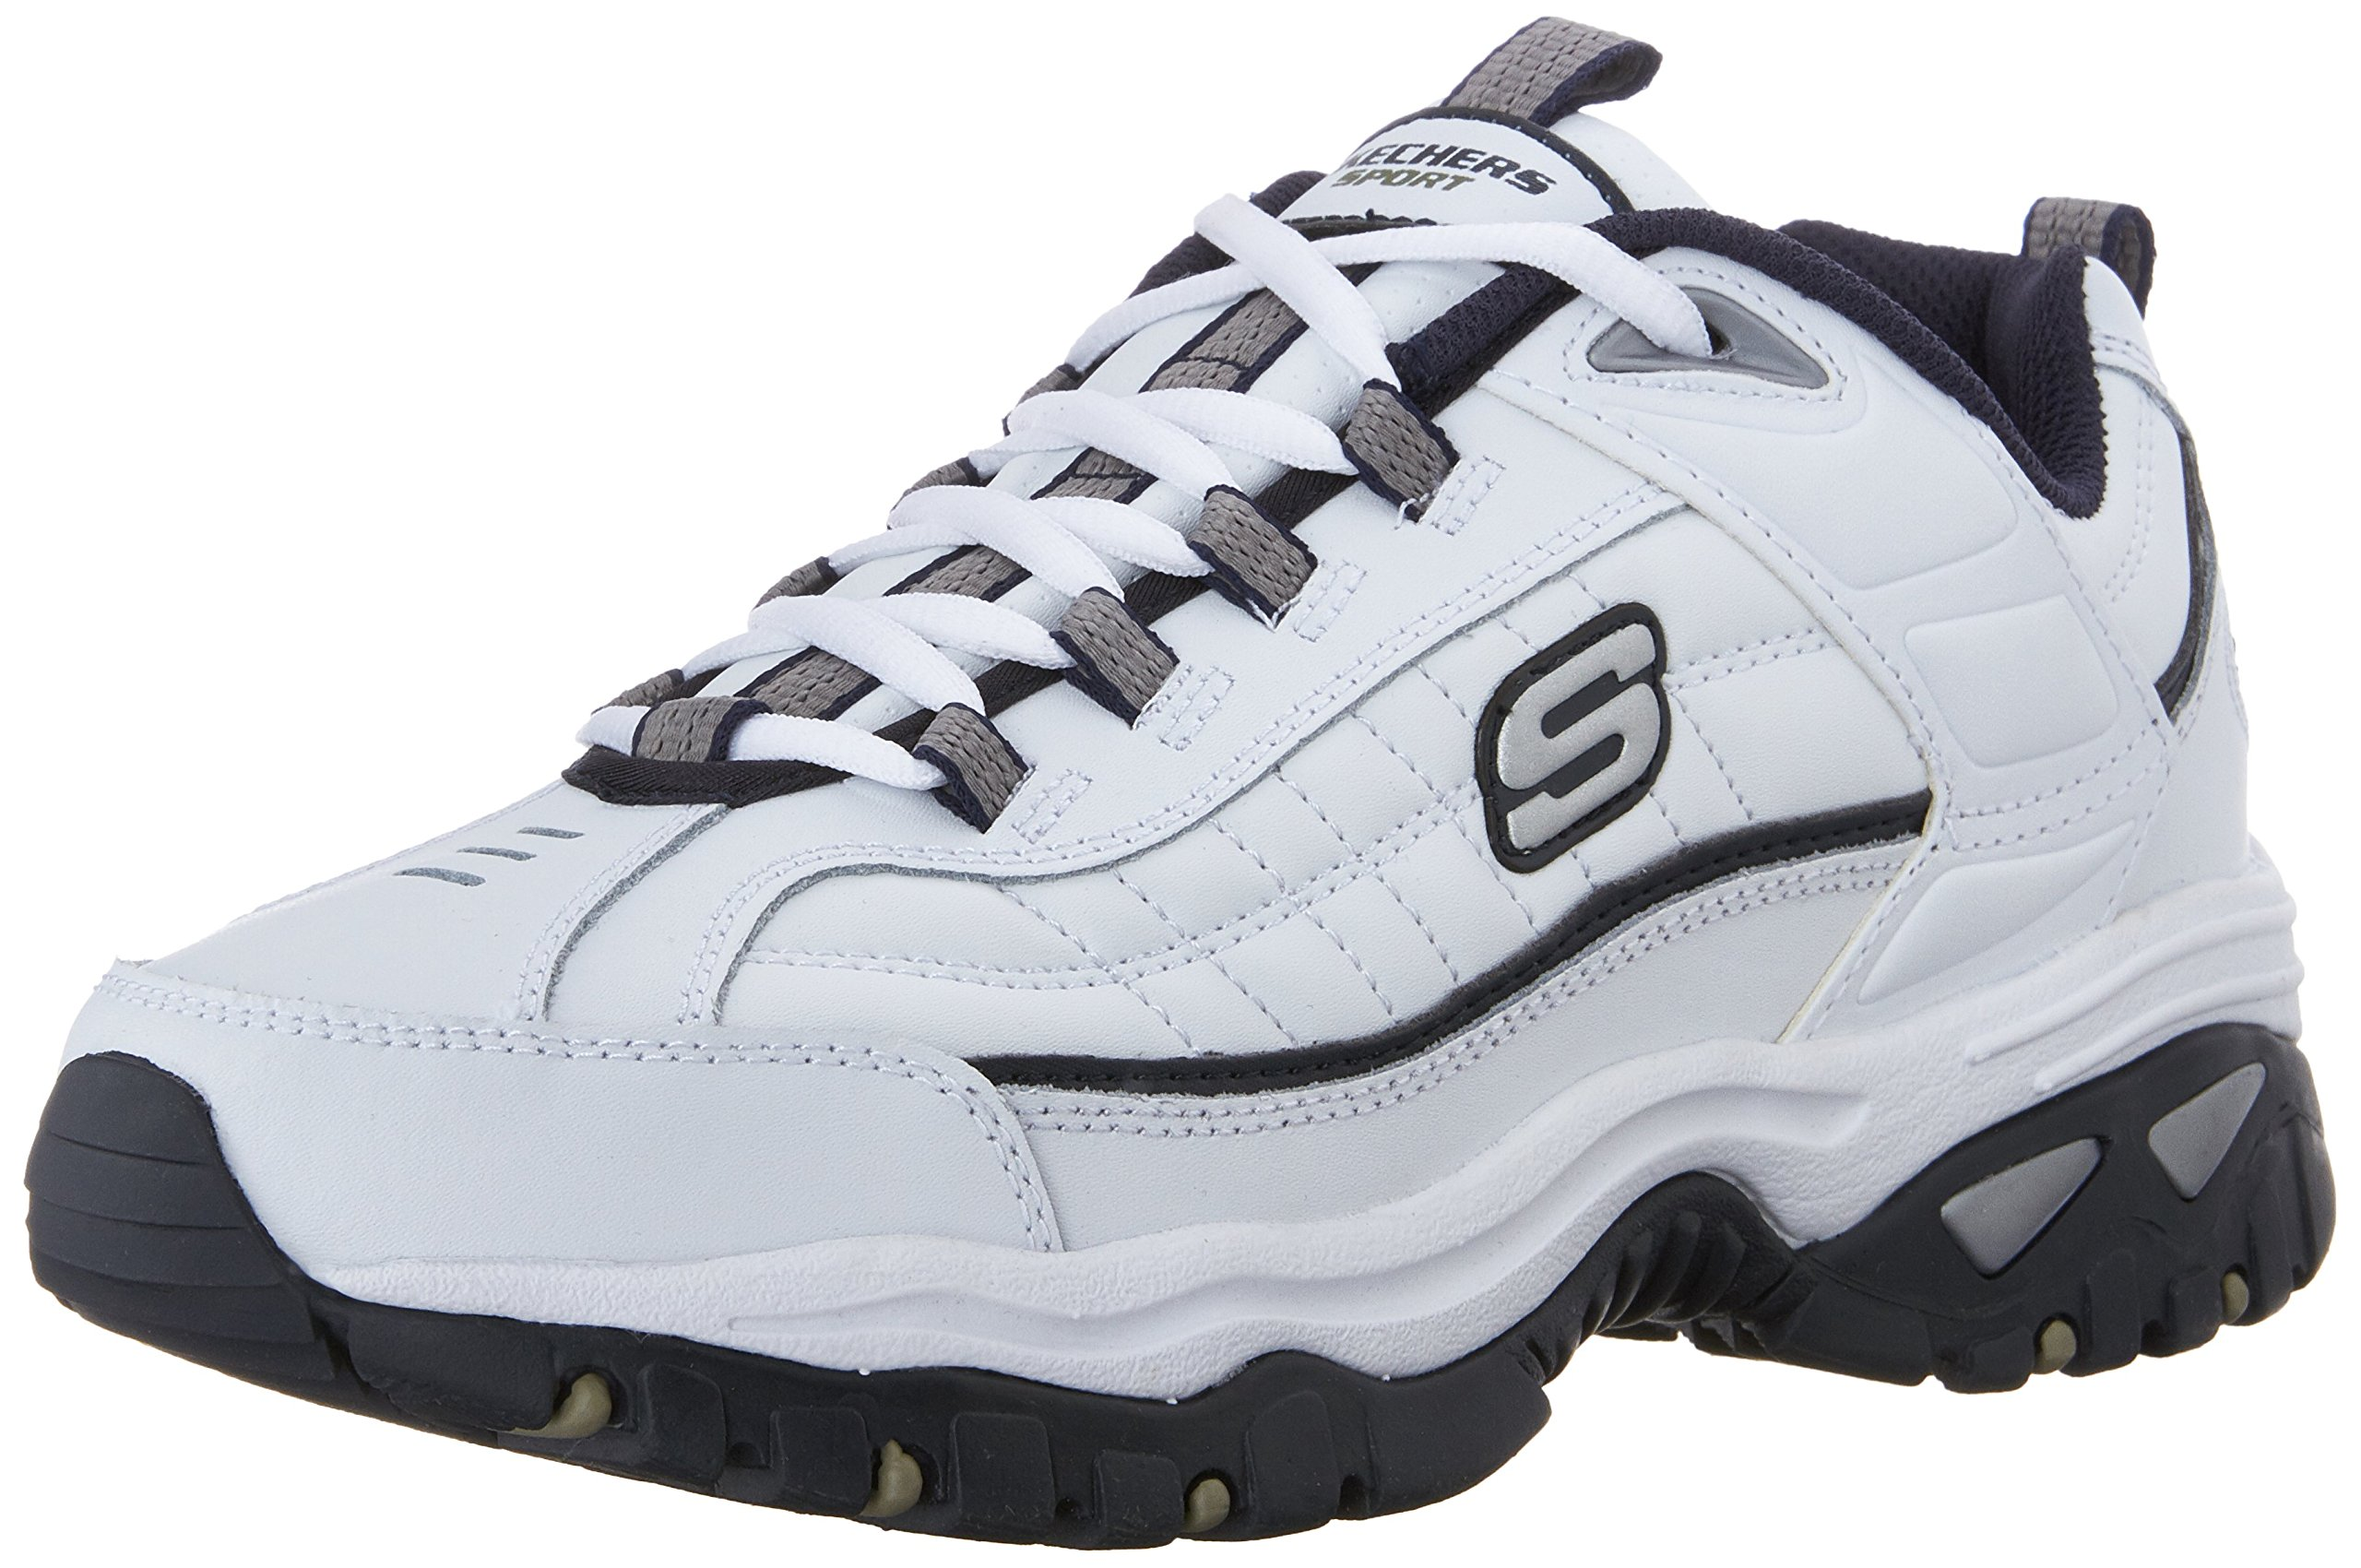 Skechers Men's Energy Afterburn Lace-Up Sneaker,White/Navy,10 M US by Skechers